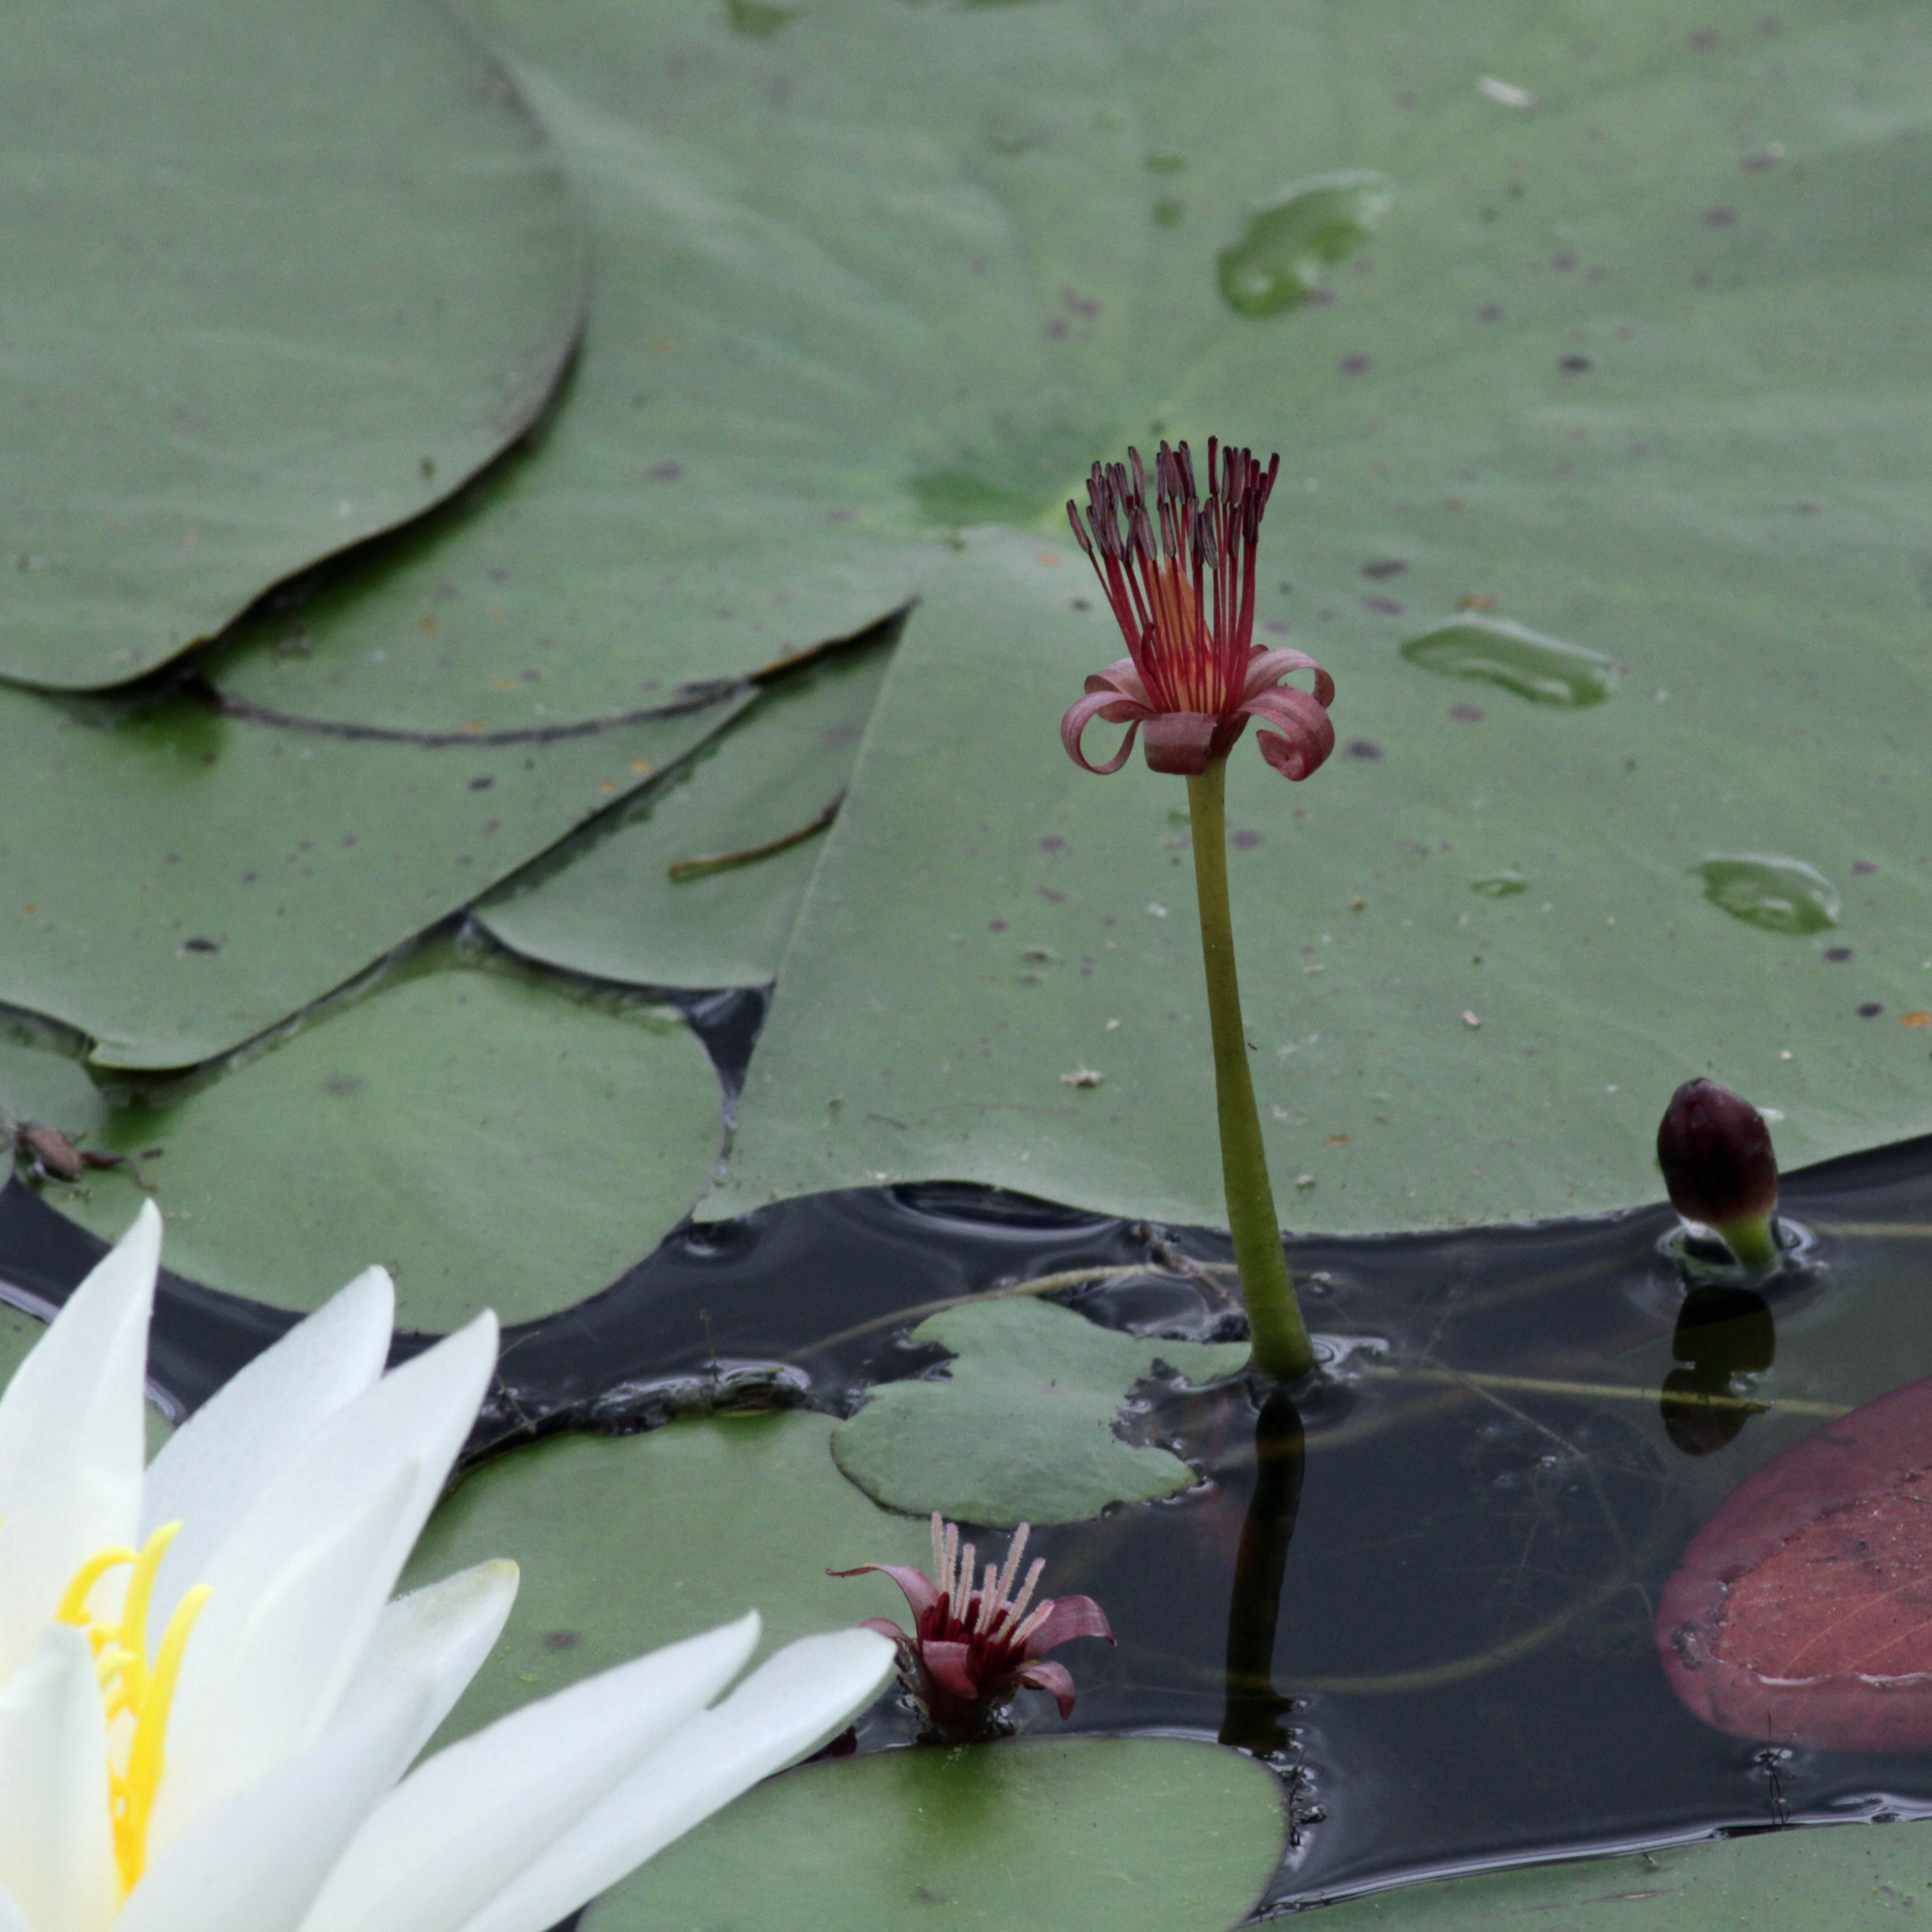 The Scientific Name is Brasenia schreberi. You will likely hear them called Water-shield, Purple Wen-dock. This picture shows the A pistillate blossom in the lower left and a staminate blossom front and center. of Brasenia schreberi